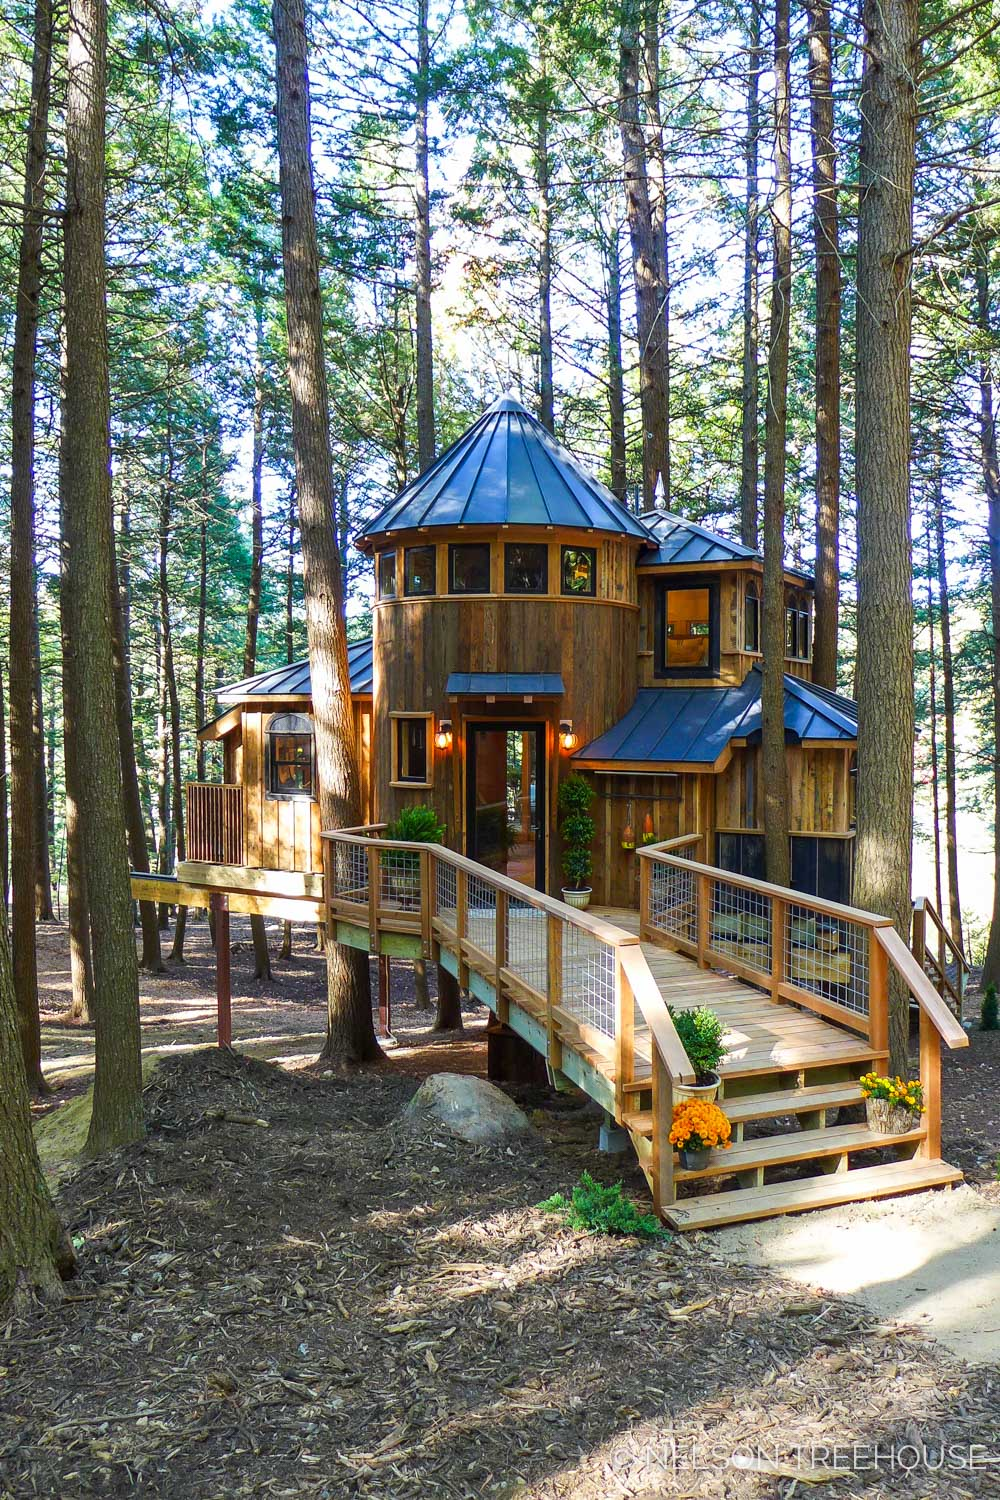 MAGICAL MAINE GETAWAY     CLICK FOR PHOTO TOUR >>     Location:  Maine  Year Built:  2017  Square Feet:  600  Elevation:  15 ft Combination tree- and steel-supported  Seasonality:  All-season